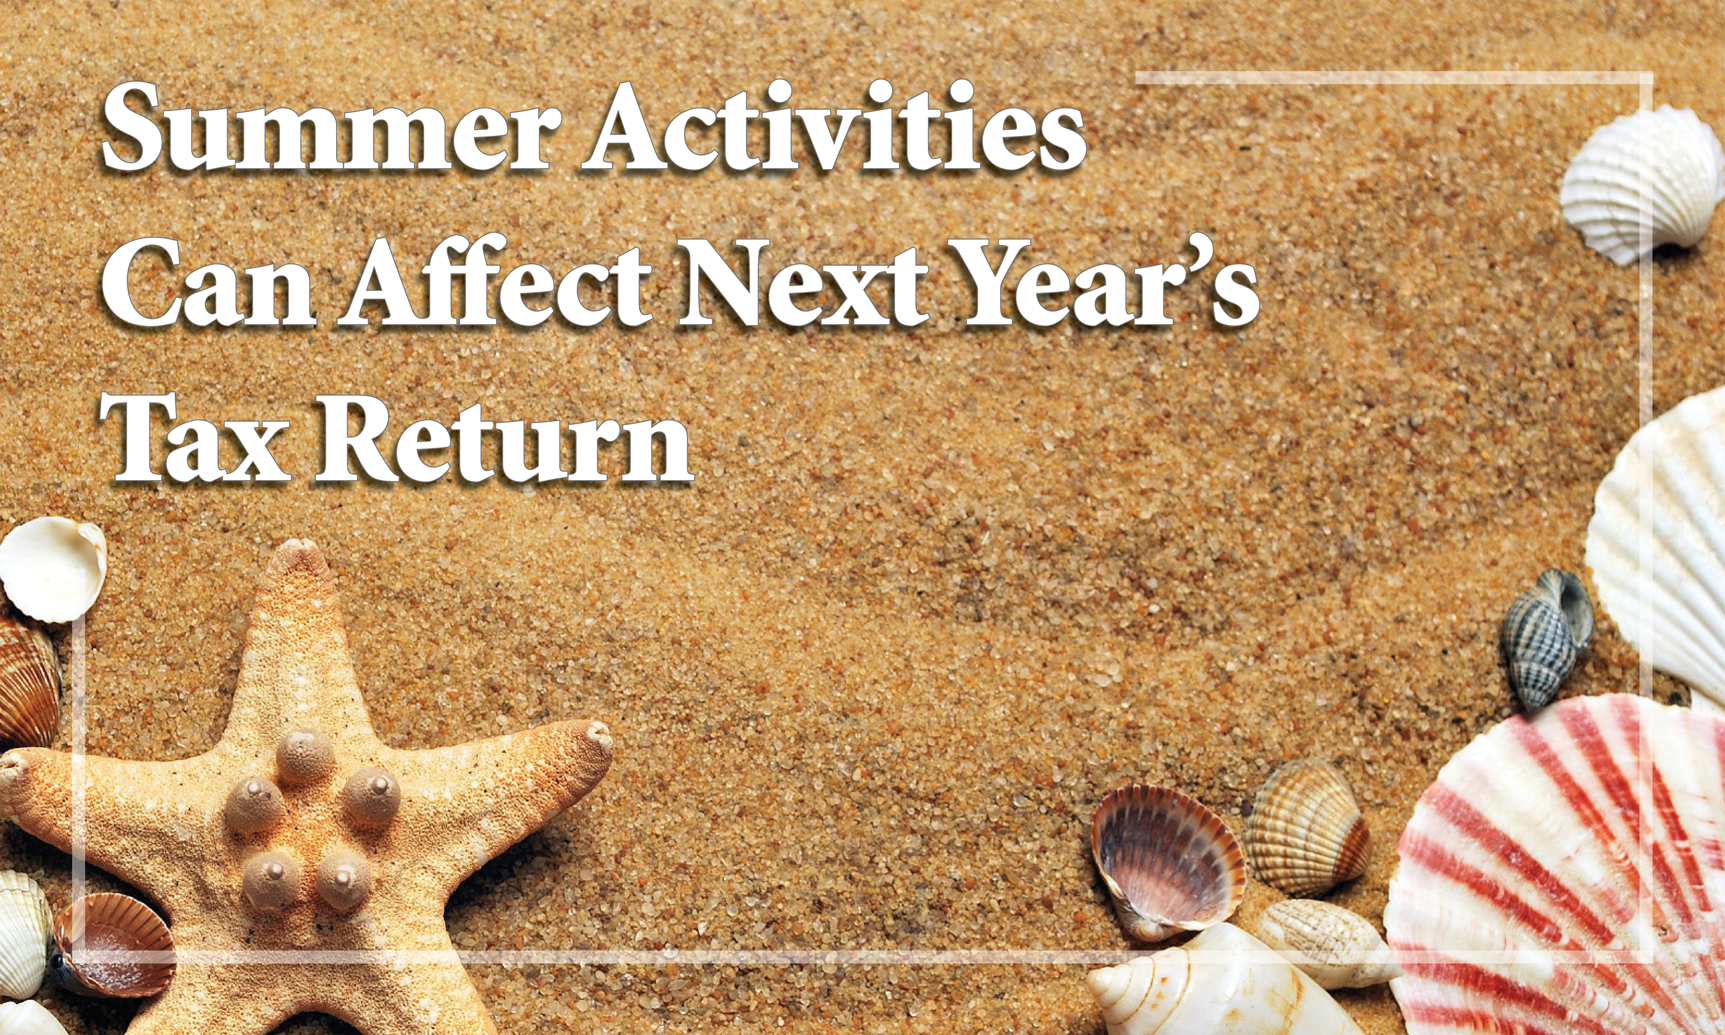 These summer activities can affect next year's tax return